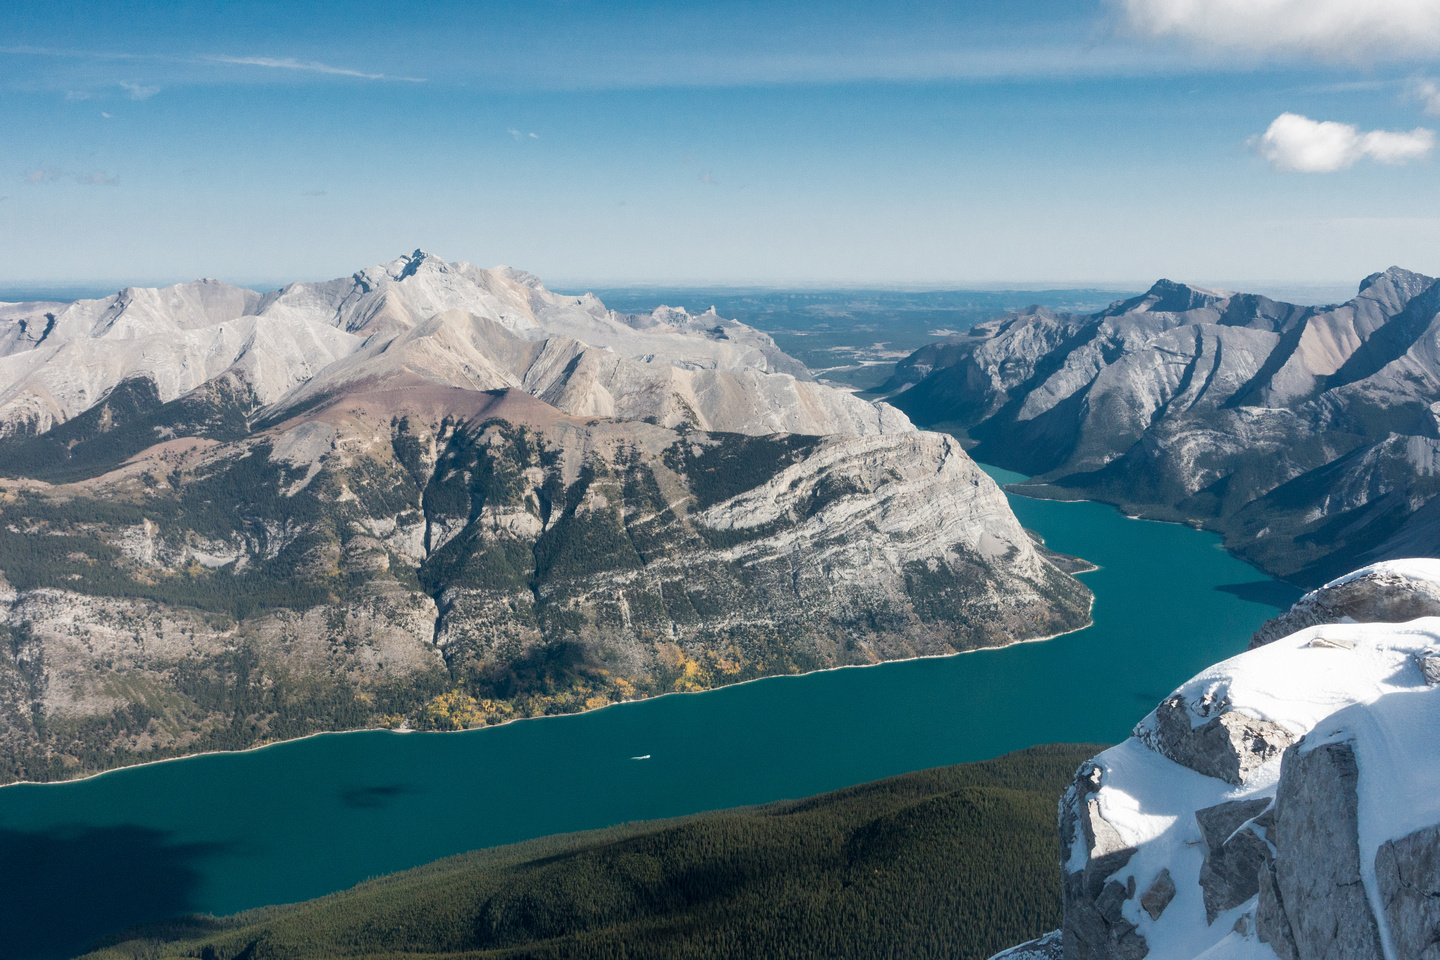 Another shot of Costigan with Lake Minnewanka and the prairies beyond.